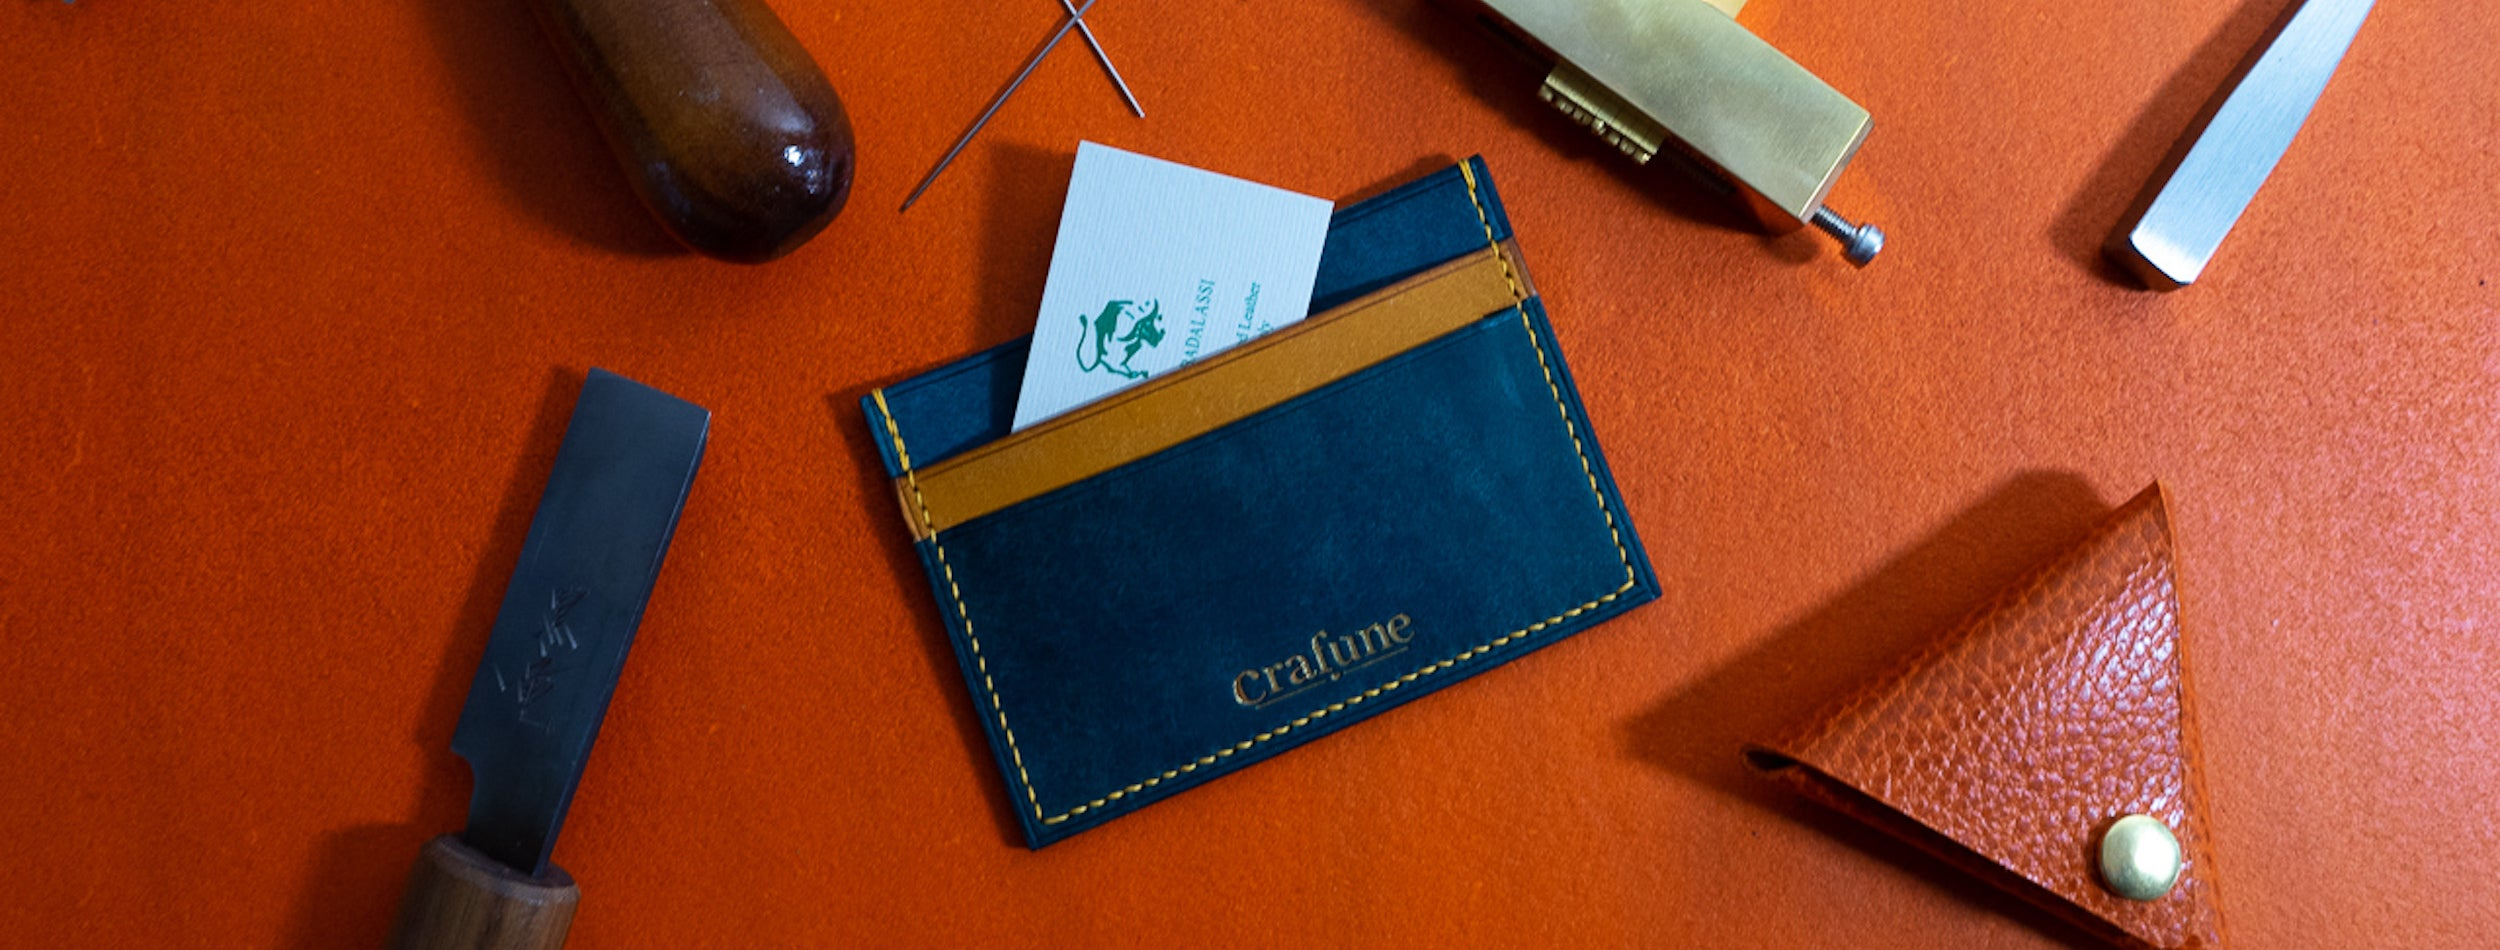 Blue leather cardholder on orange table surrounded by tools